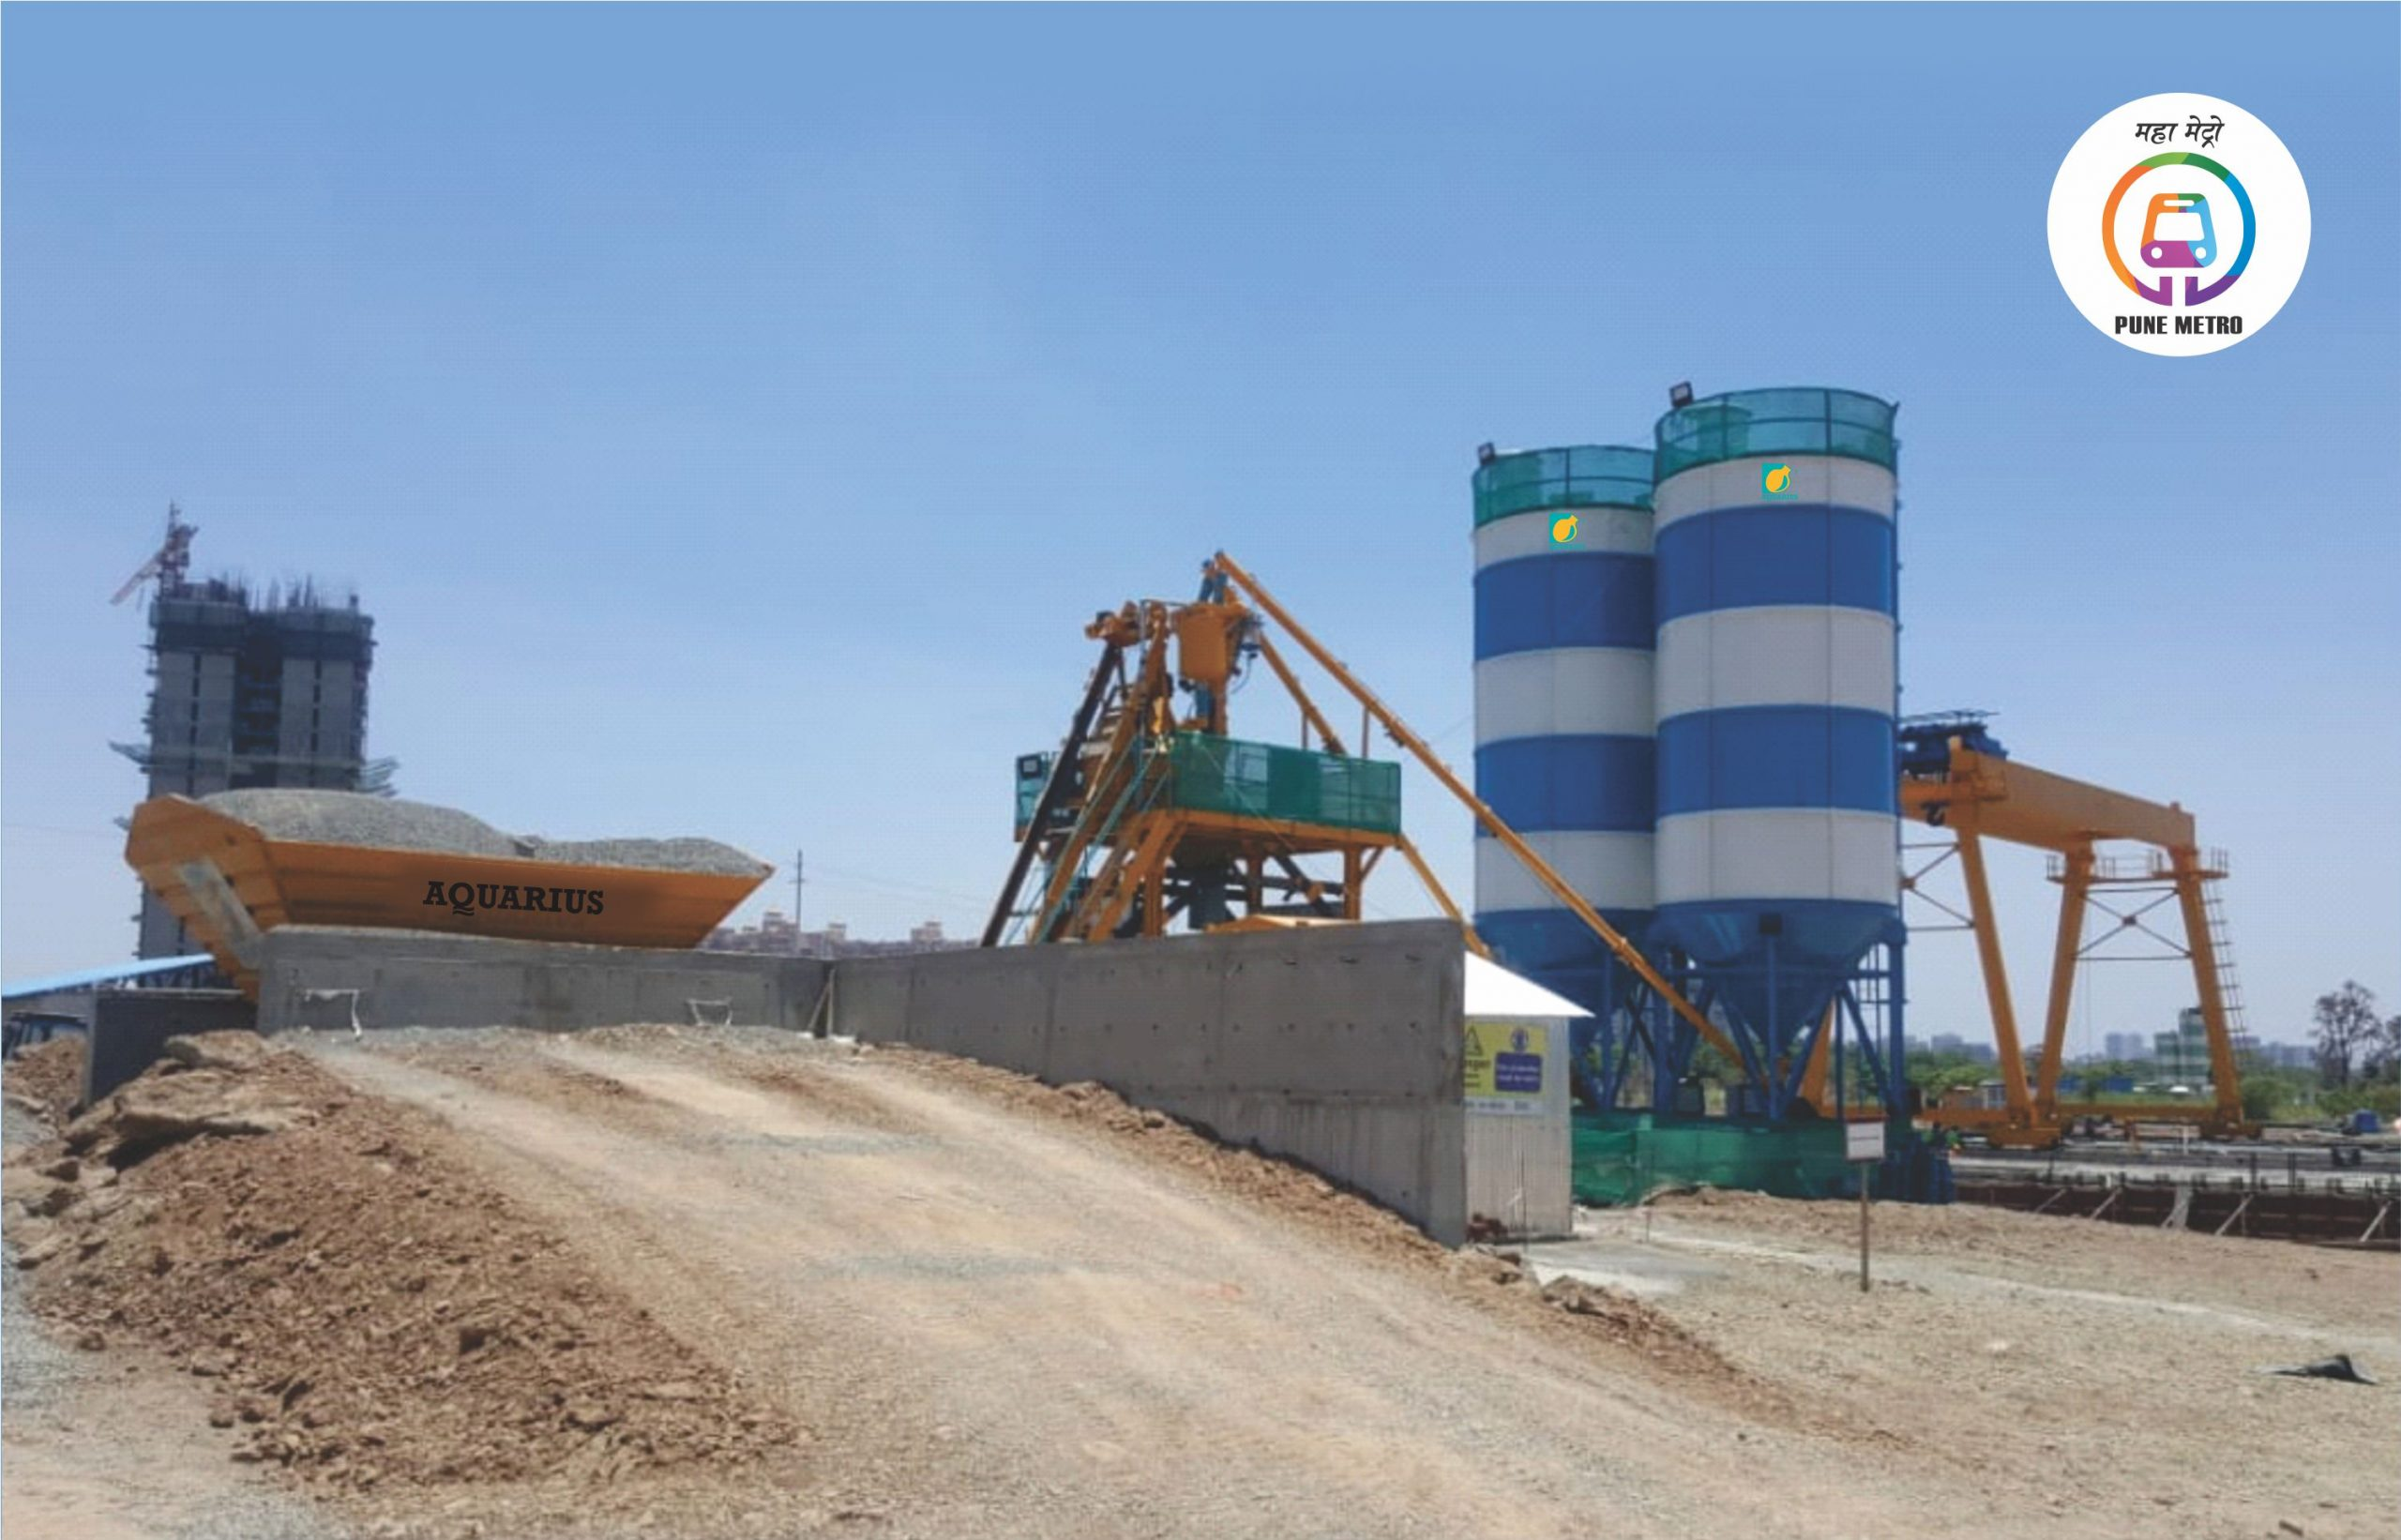 Aquarius MP 30 Batching Plant working at SHINDE DEVELOPERS for PUNE METRO Project